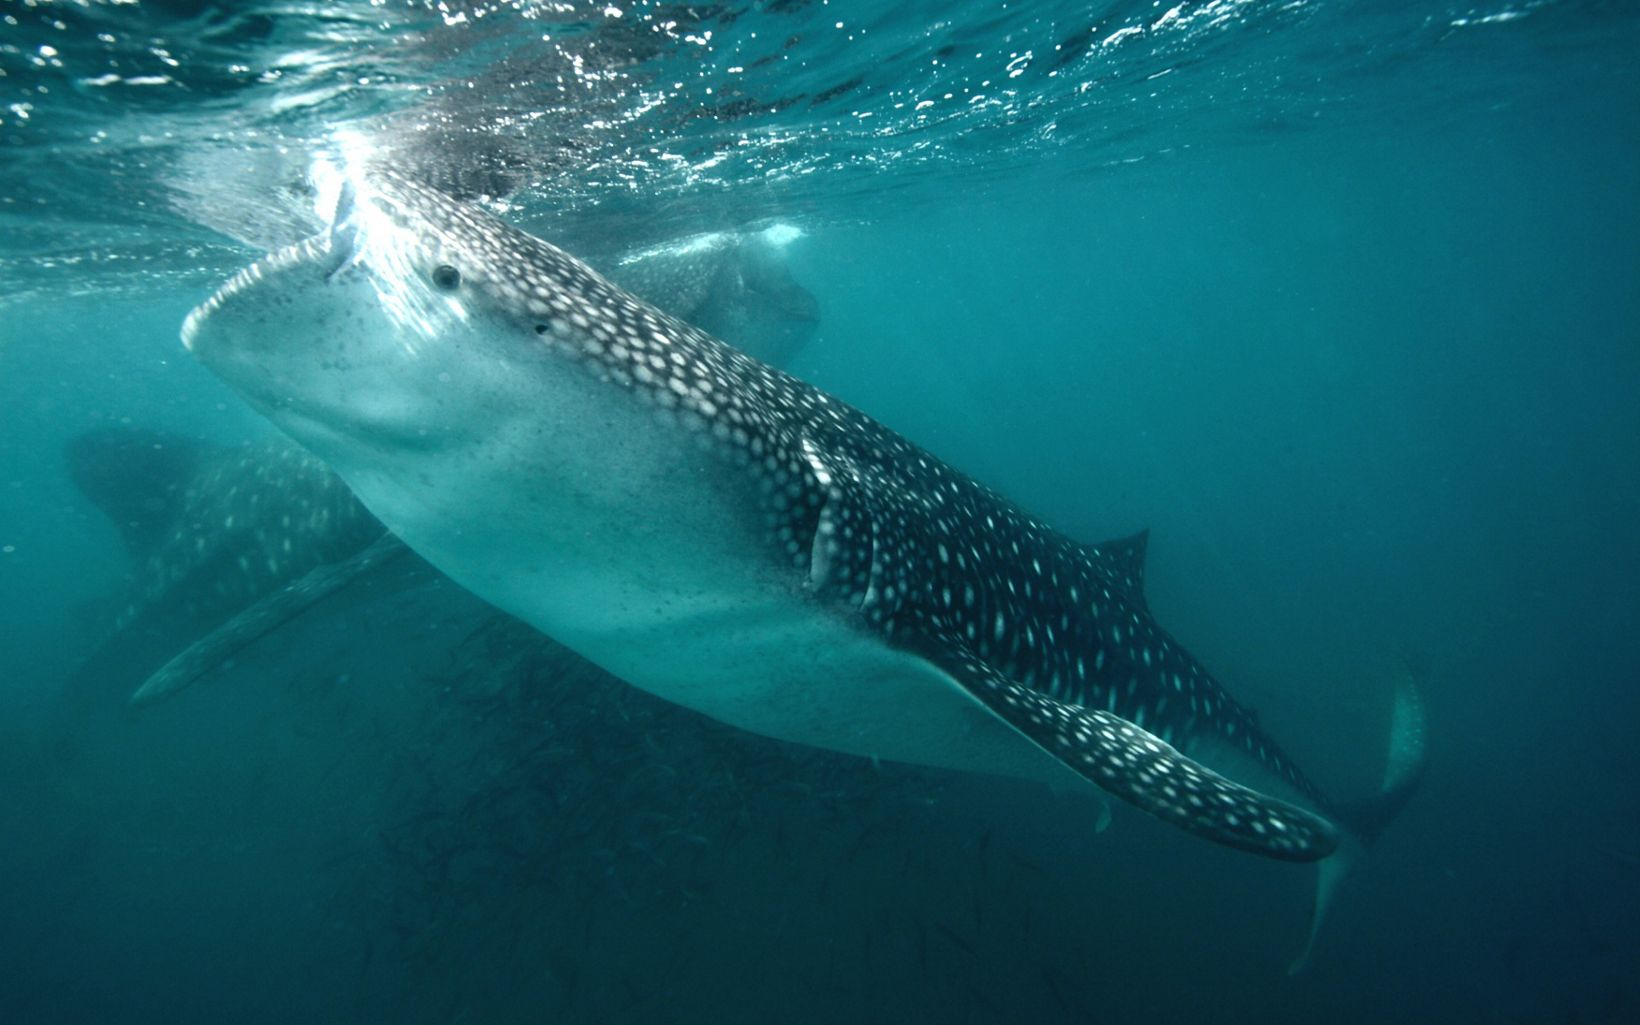 A pair of juvenile whale sharks measuring nearly 20 feet in length feed in the productive waters off La Paz in Mexico's Baja California.